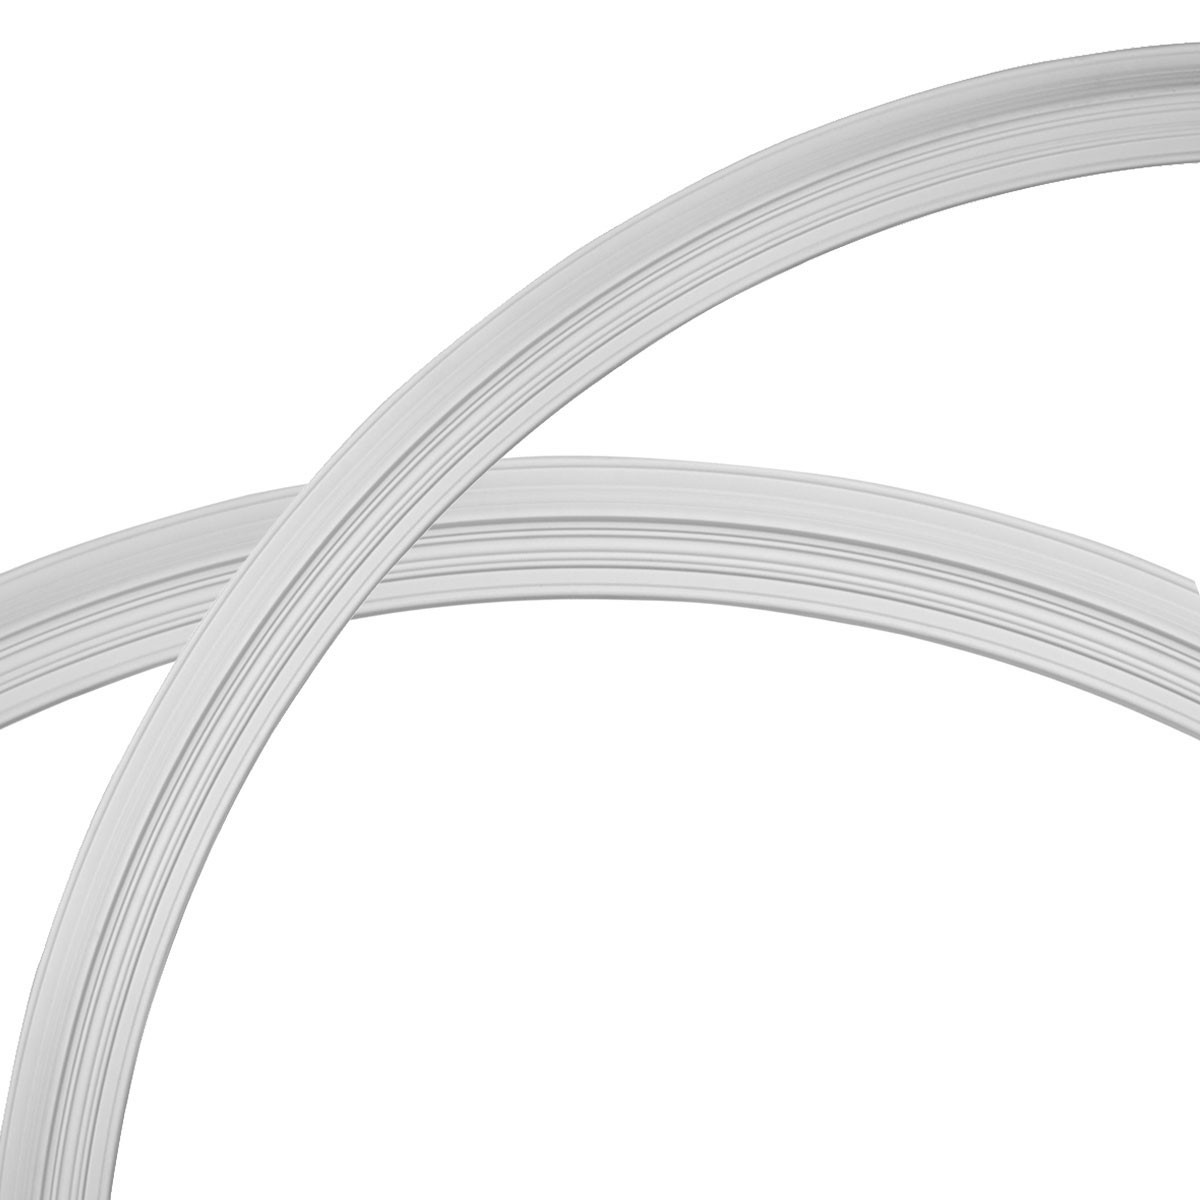 """EM-CR86LE - 87 1/2""""OD x 79 1/4""""ID x 4 1/8""""W x 1 1/2""""P Legacy Ceiling Ring (1/4 of complete circle)"""